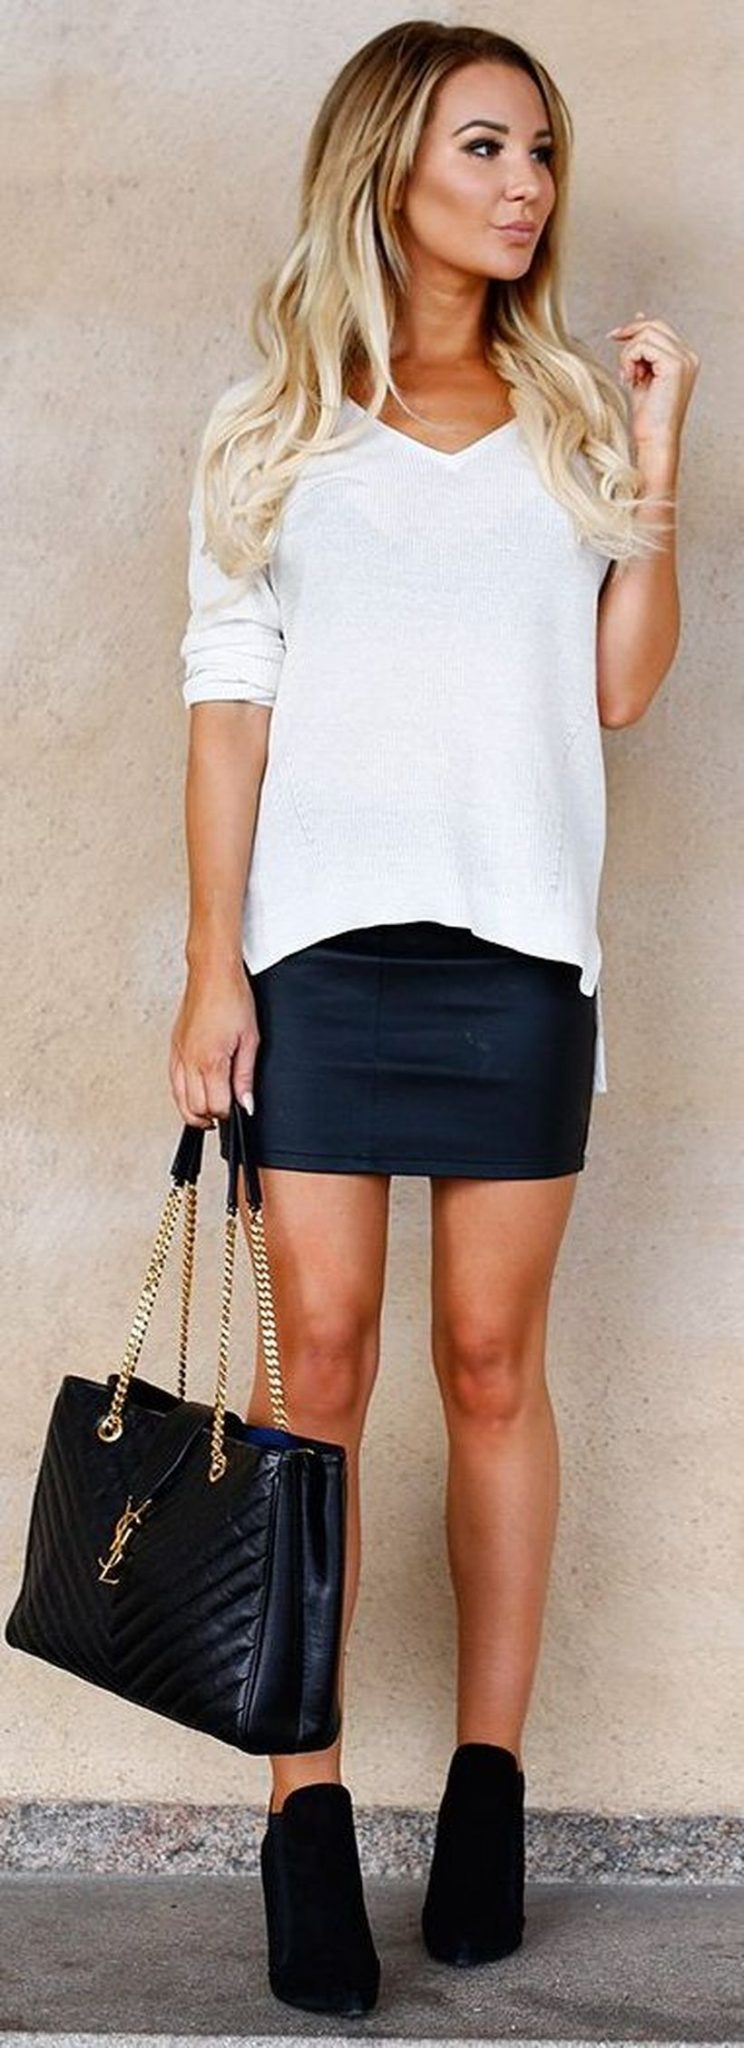 Fashionable skirt outfits ideas that you must try 26